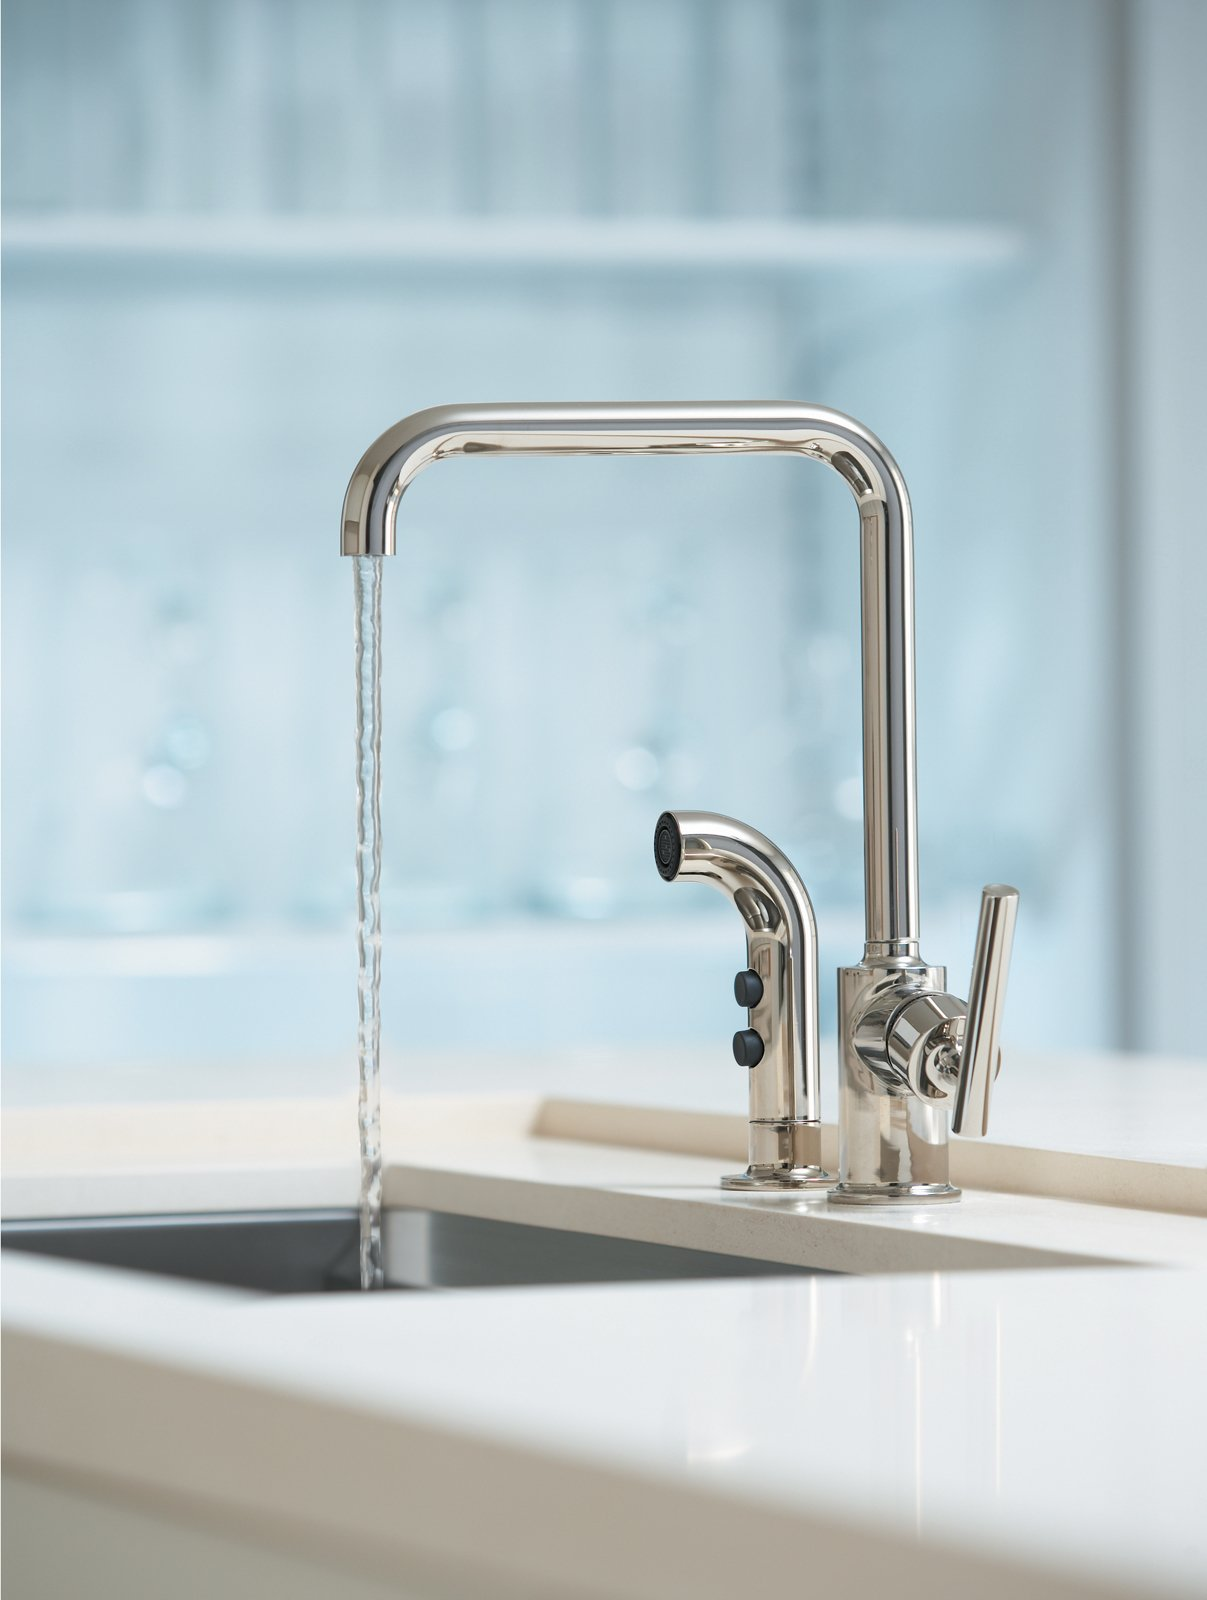 The Purist kitchen faucet by Kohler  Photo 9 of 11 in How Much Should You Spend on a Kitchen Faucet? from Preview: Shane Judd of Kohler